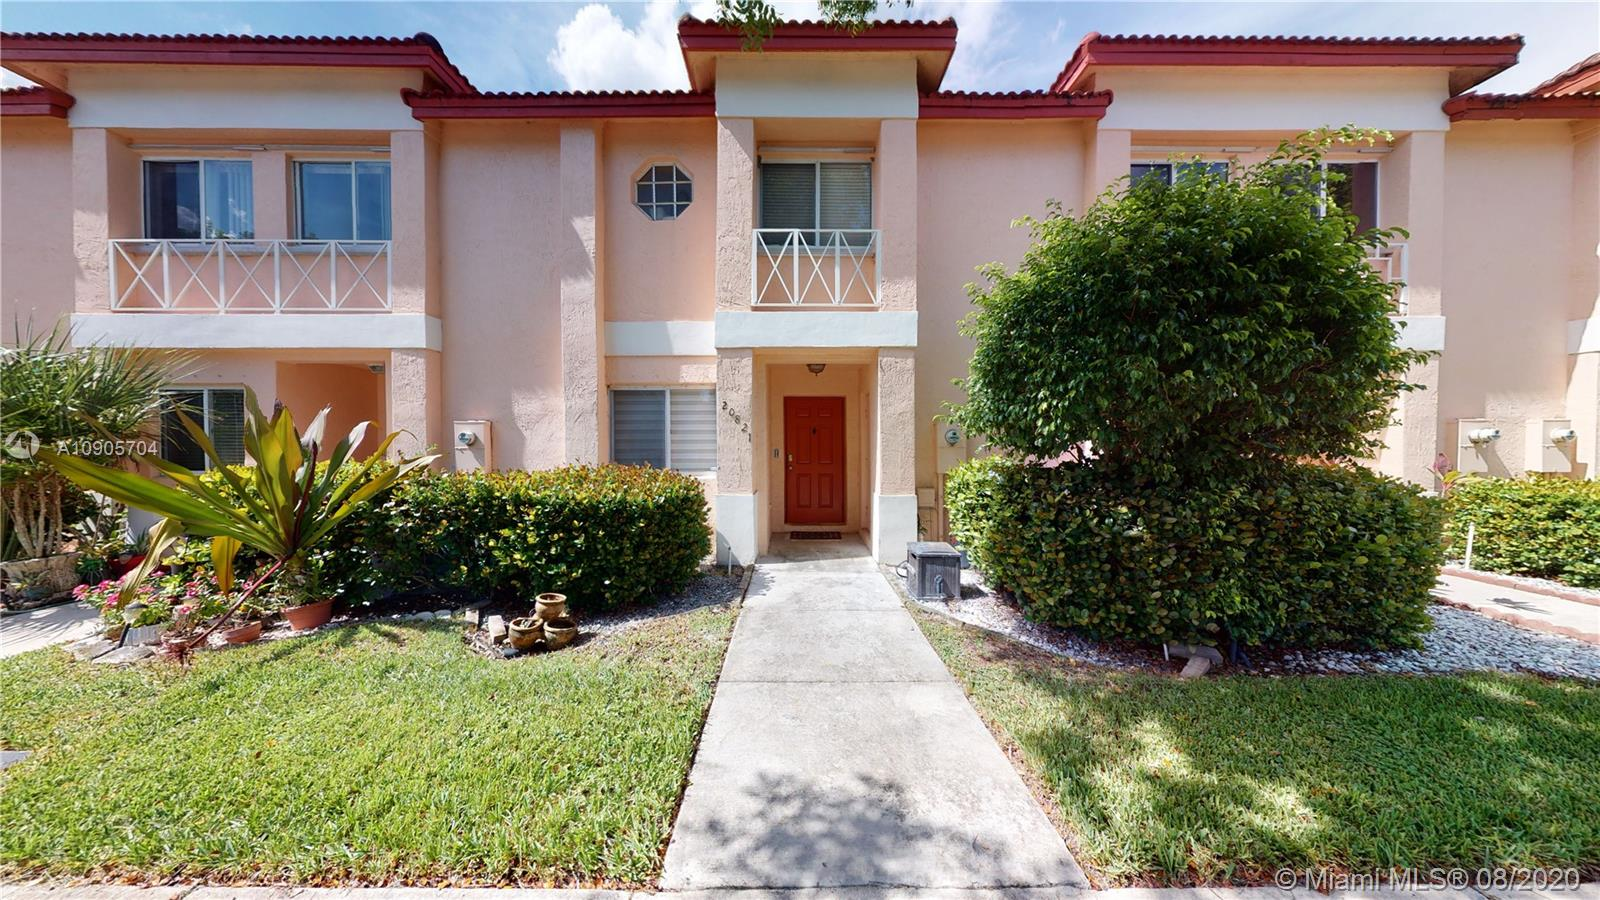 20821 NW 2nd St #20821 For Sale A10905704, FL